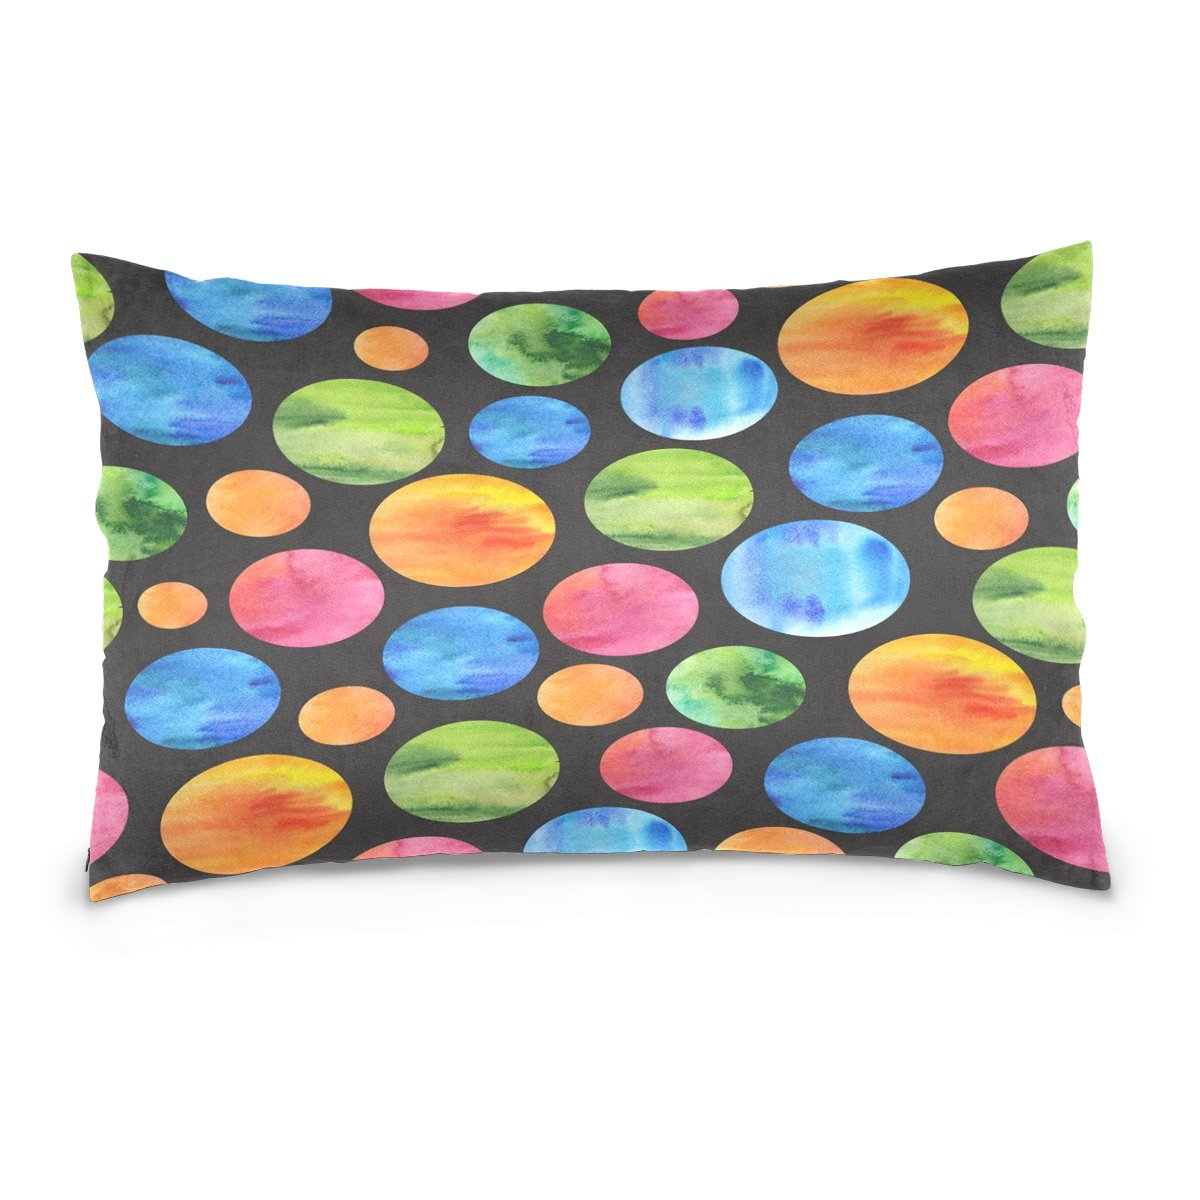 ALAZA Colorful Planet Solar System Cotton Lint Pillow Case,Double-sided Printing Home Decor Pillowcase Size 16''x24'',for Bedroom Women Girl Boy